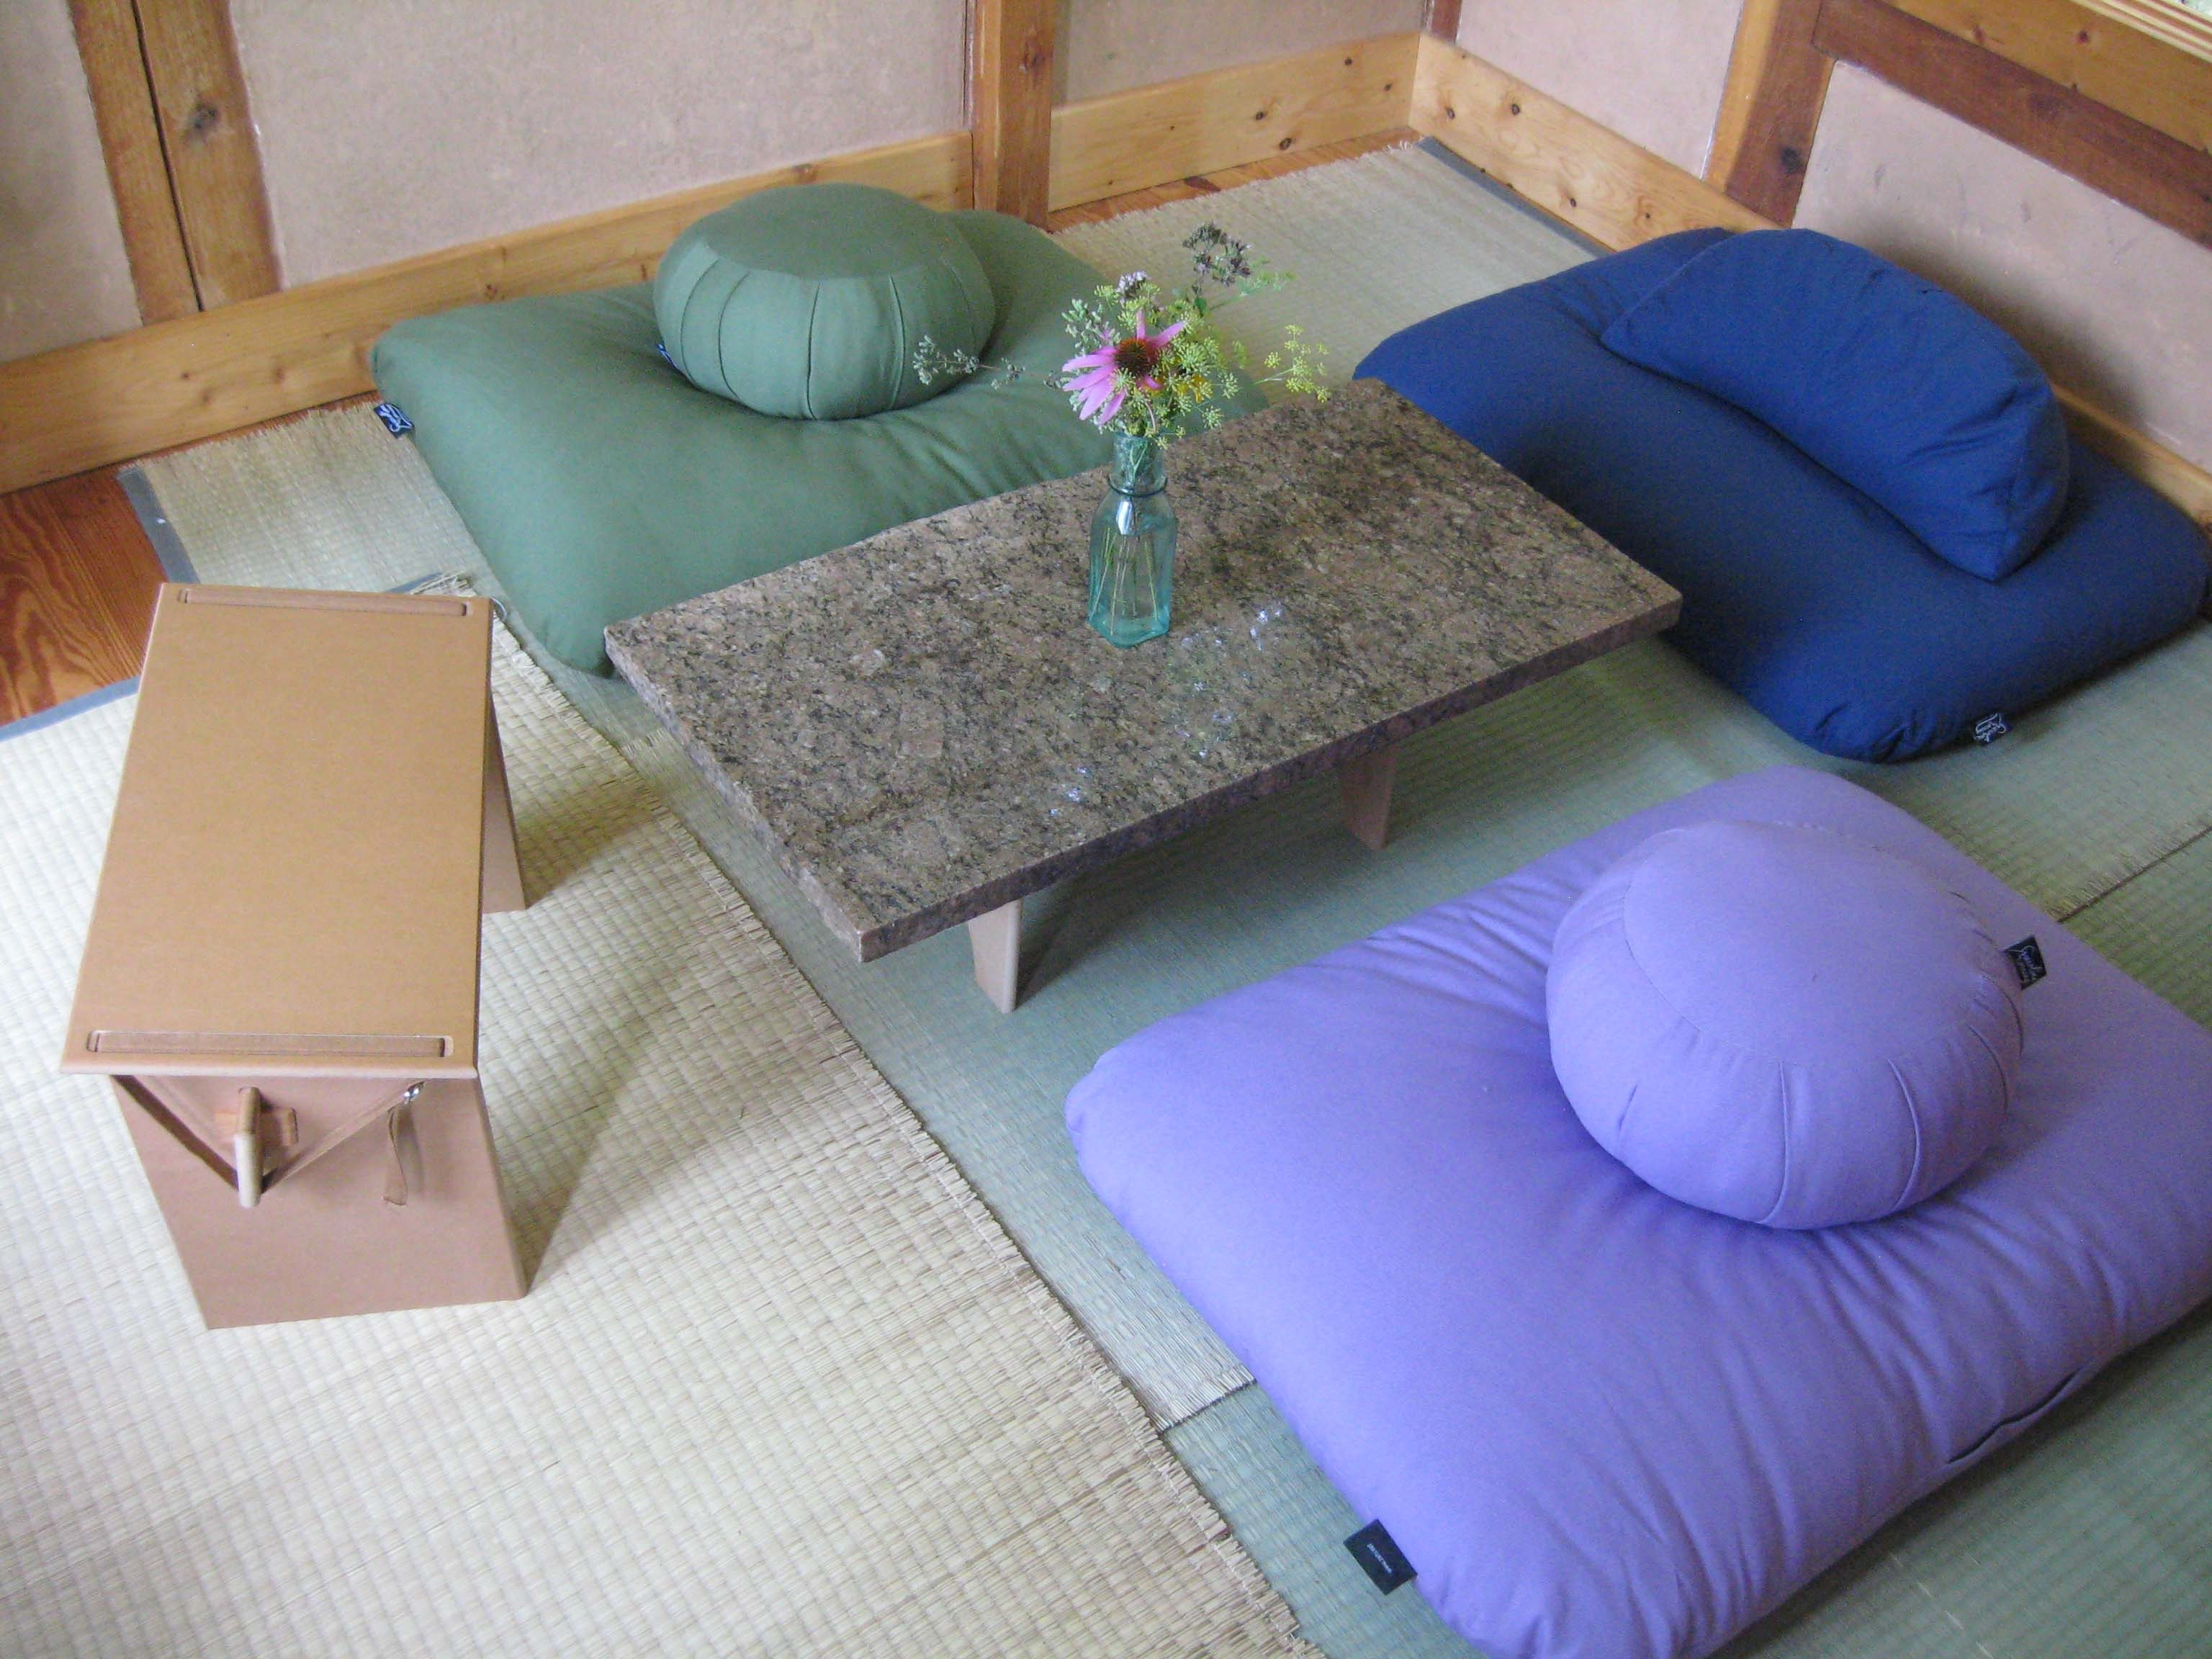 sofa seat cover design come bed low price floor seating ideas: a new and unusual detail in your ...